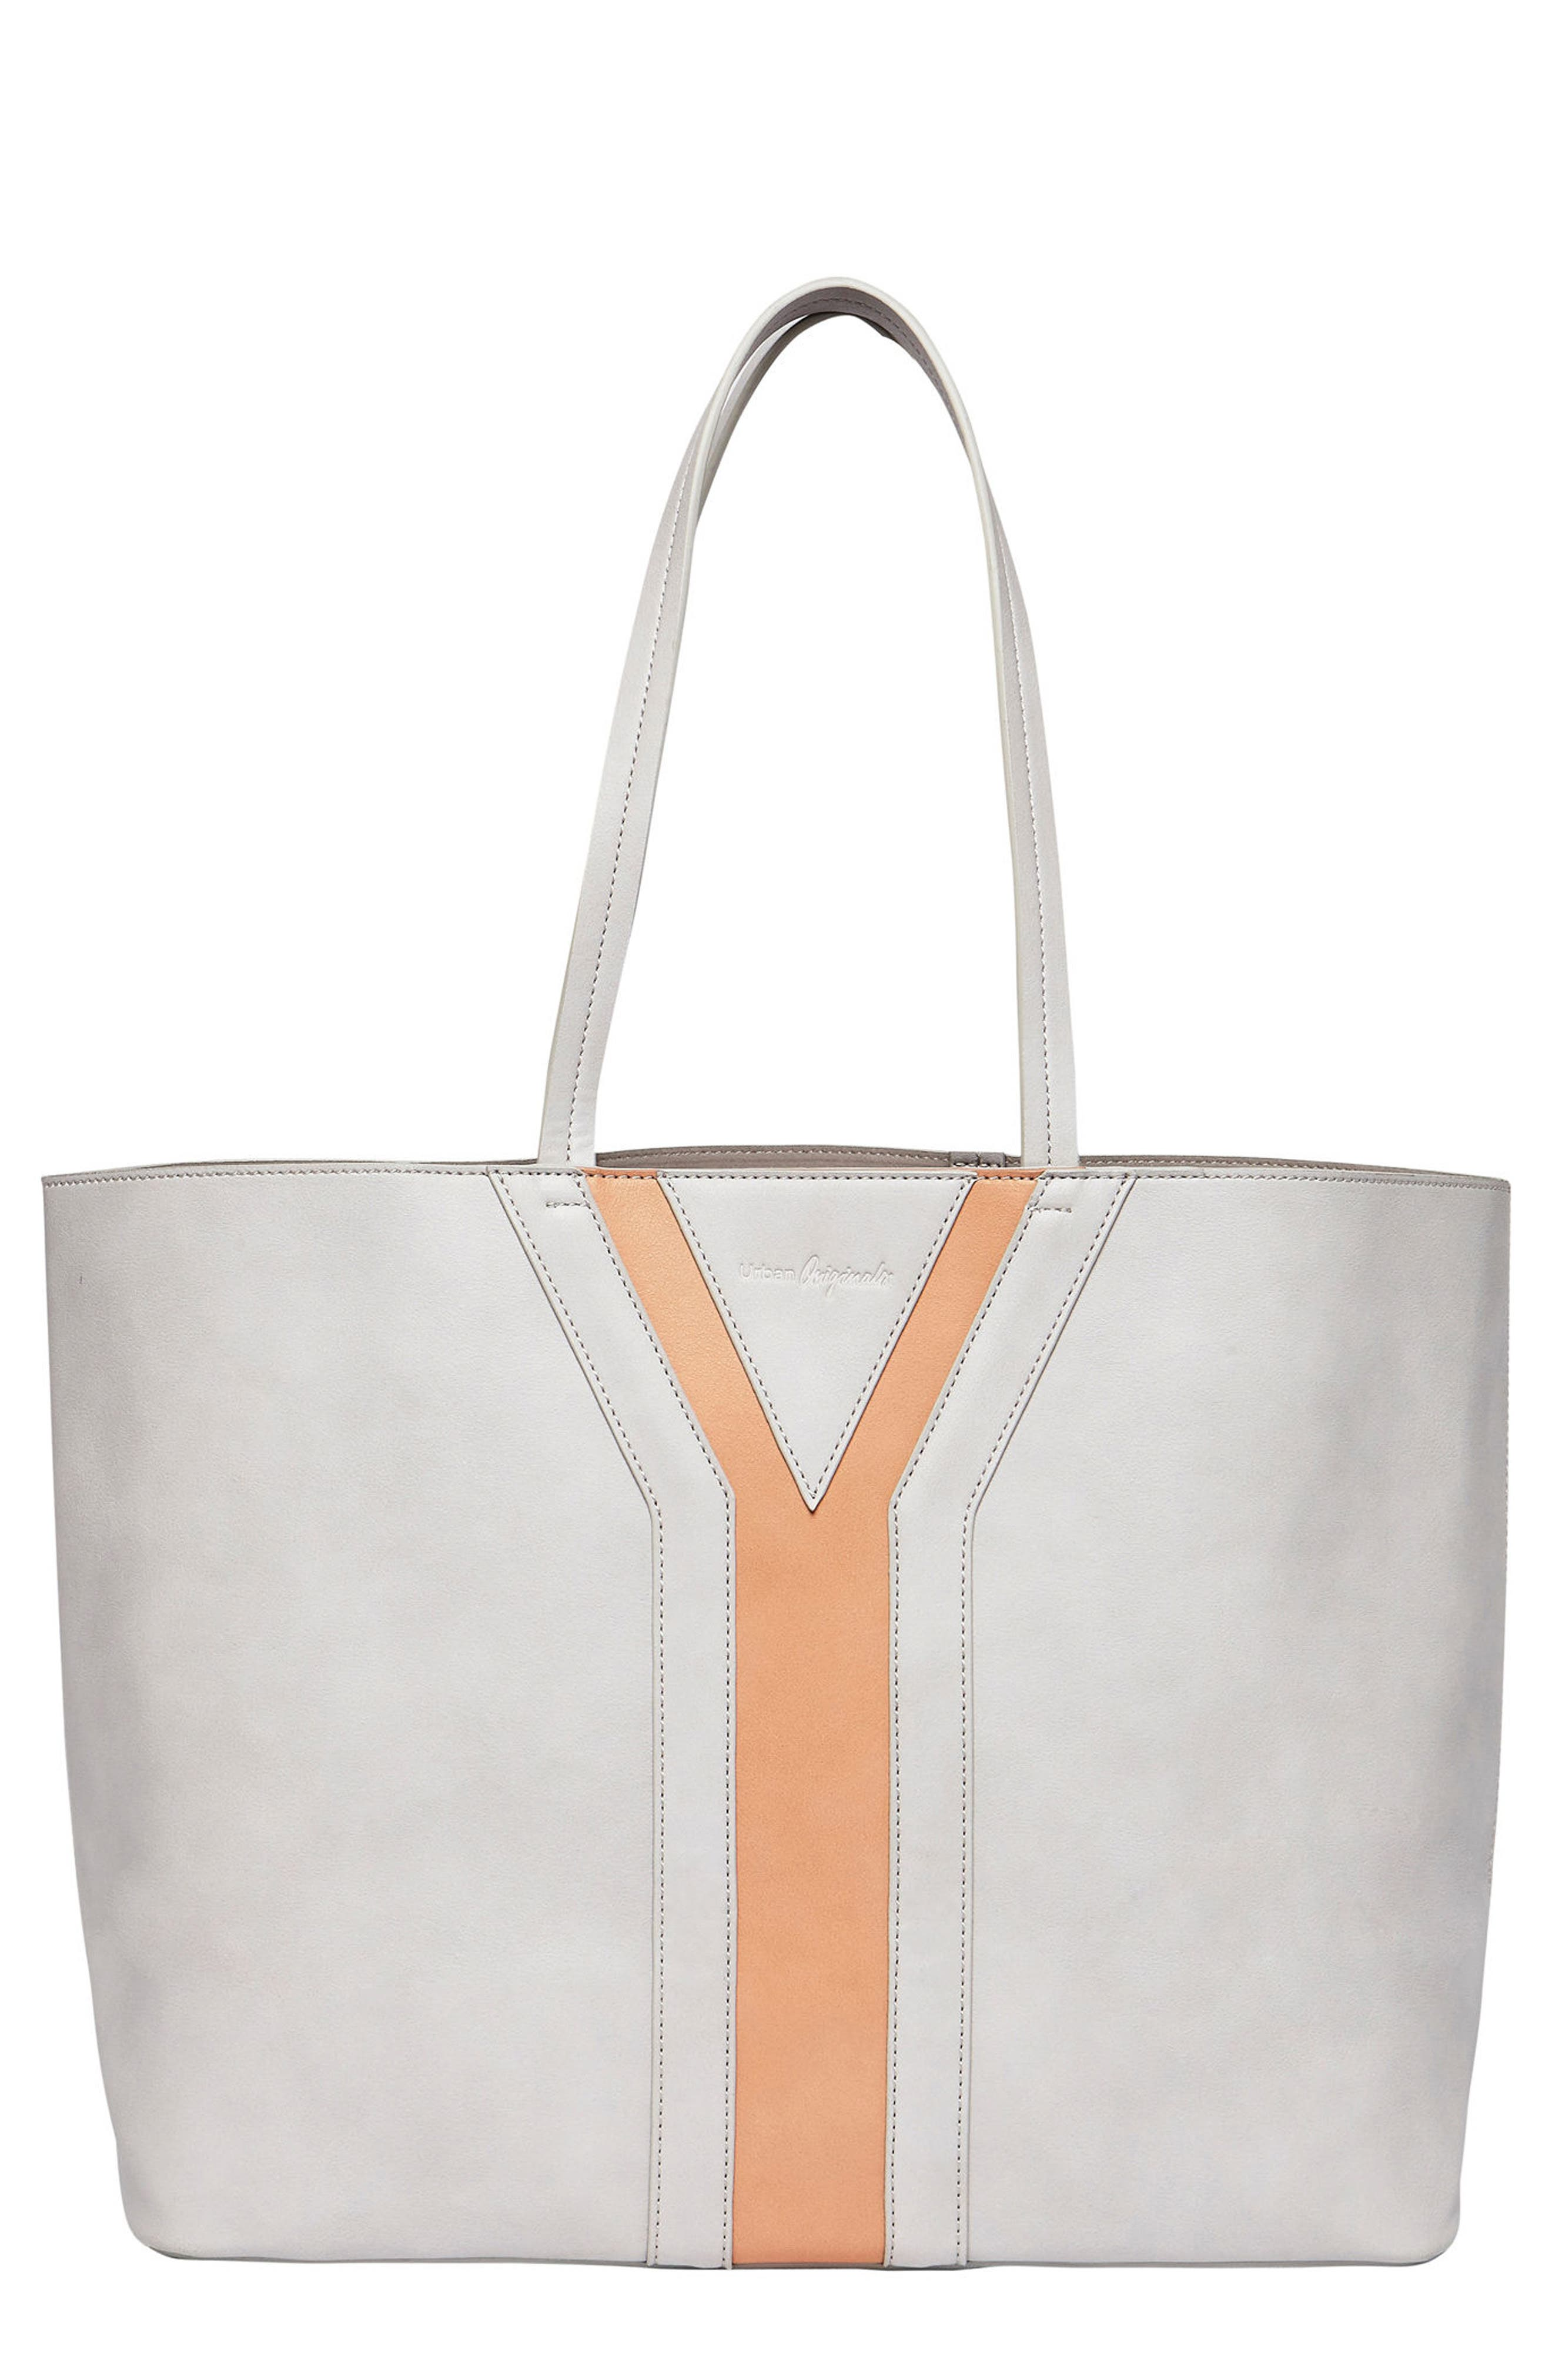 Streetstyle Vegan Leather Tote,                             Main thumbnail 1, color,                             Grey/ Pink